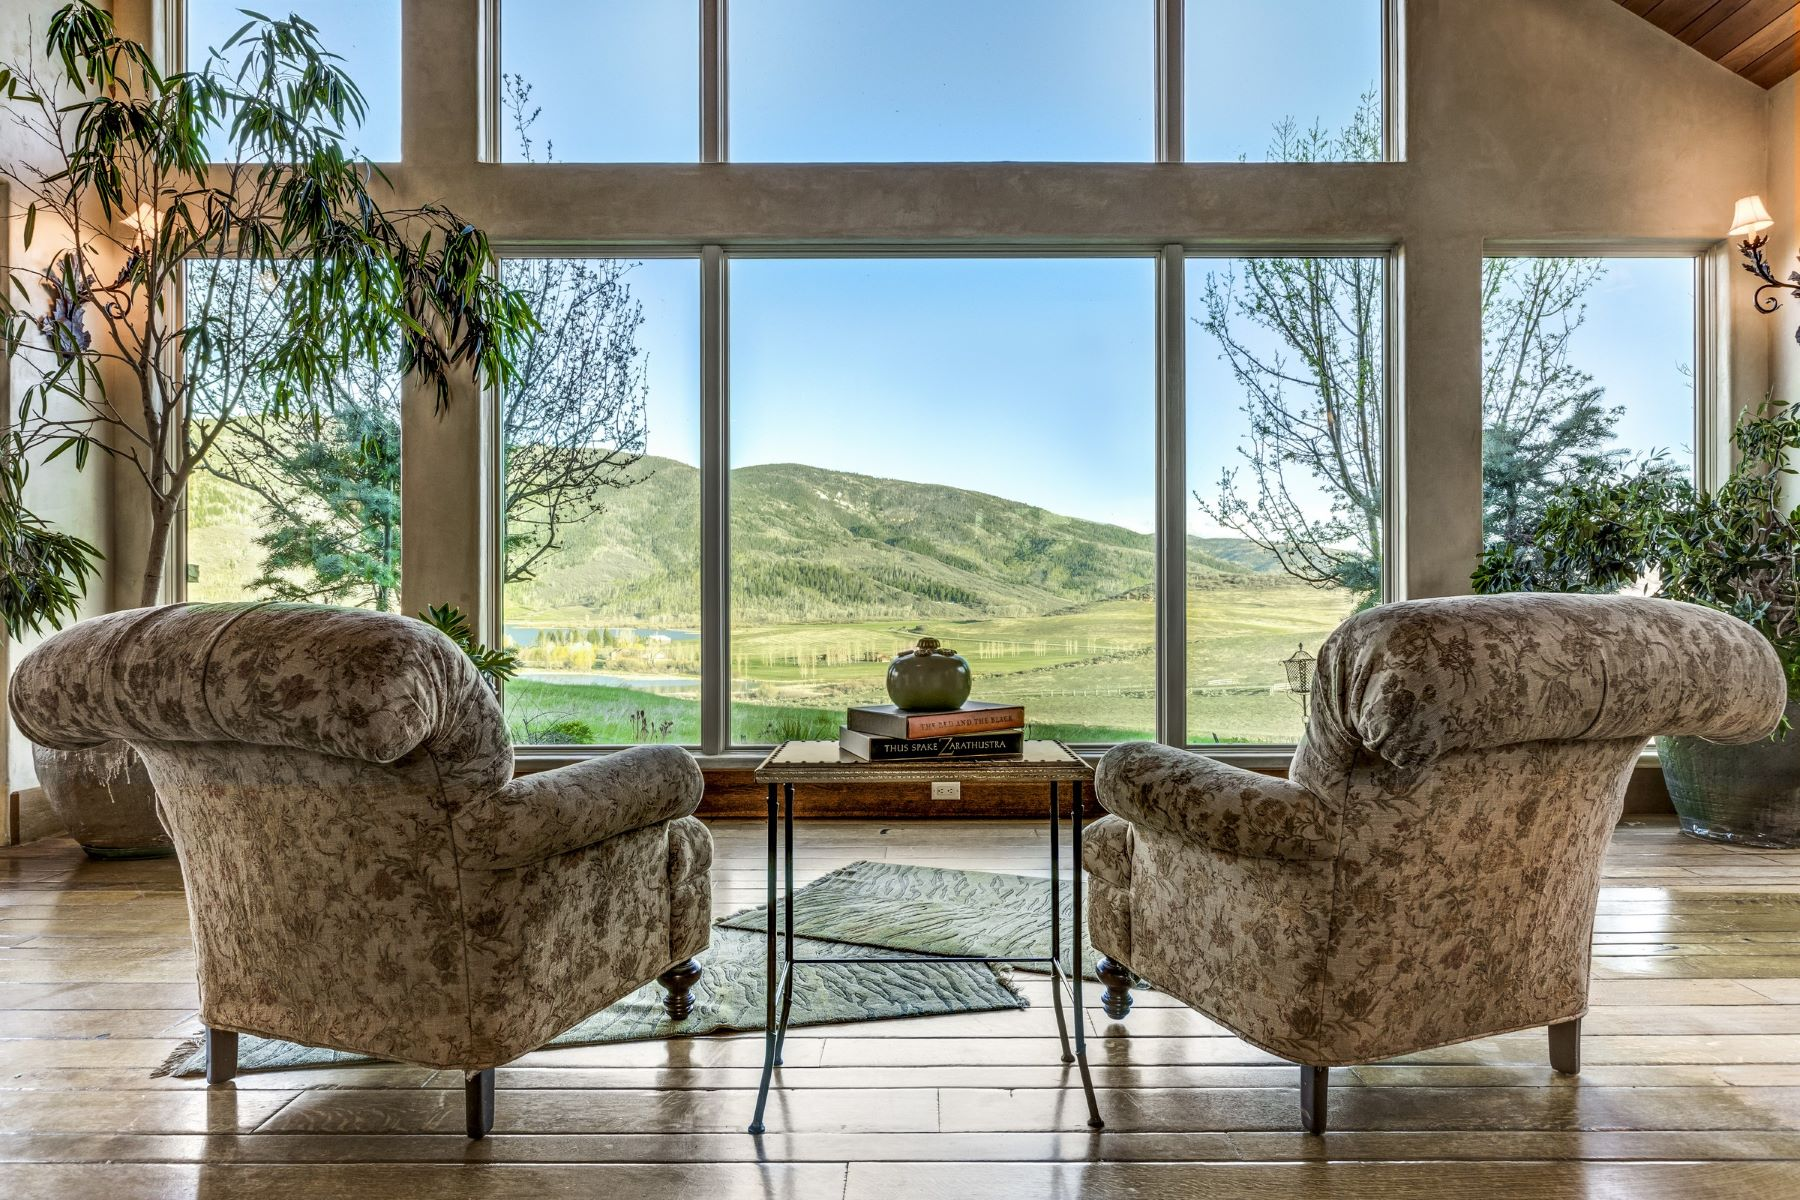 Additional photo for property listing at Lake Catamount Beautiful High-End Design Lake Catamount Home 32120 County Road 14C Steamboat Springs, Colorado 80487 Estados Unidos